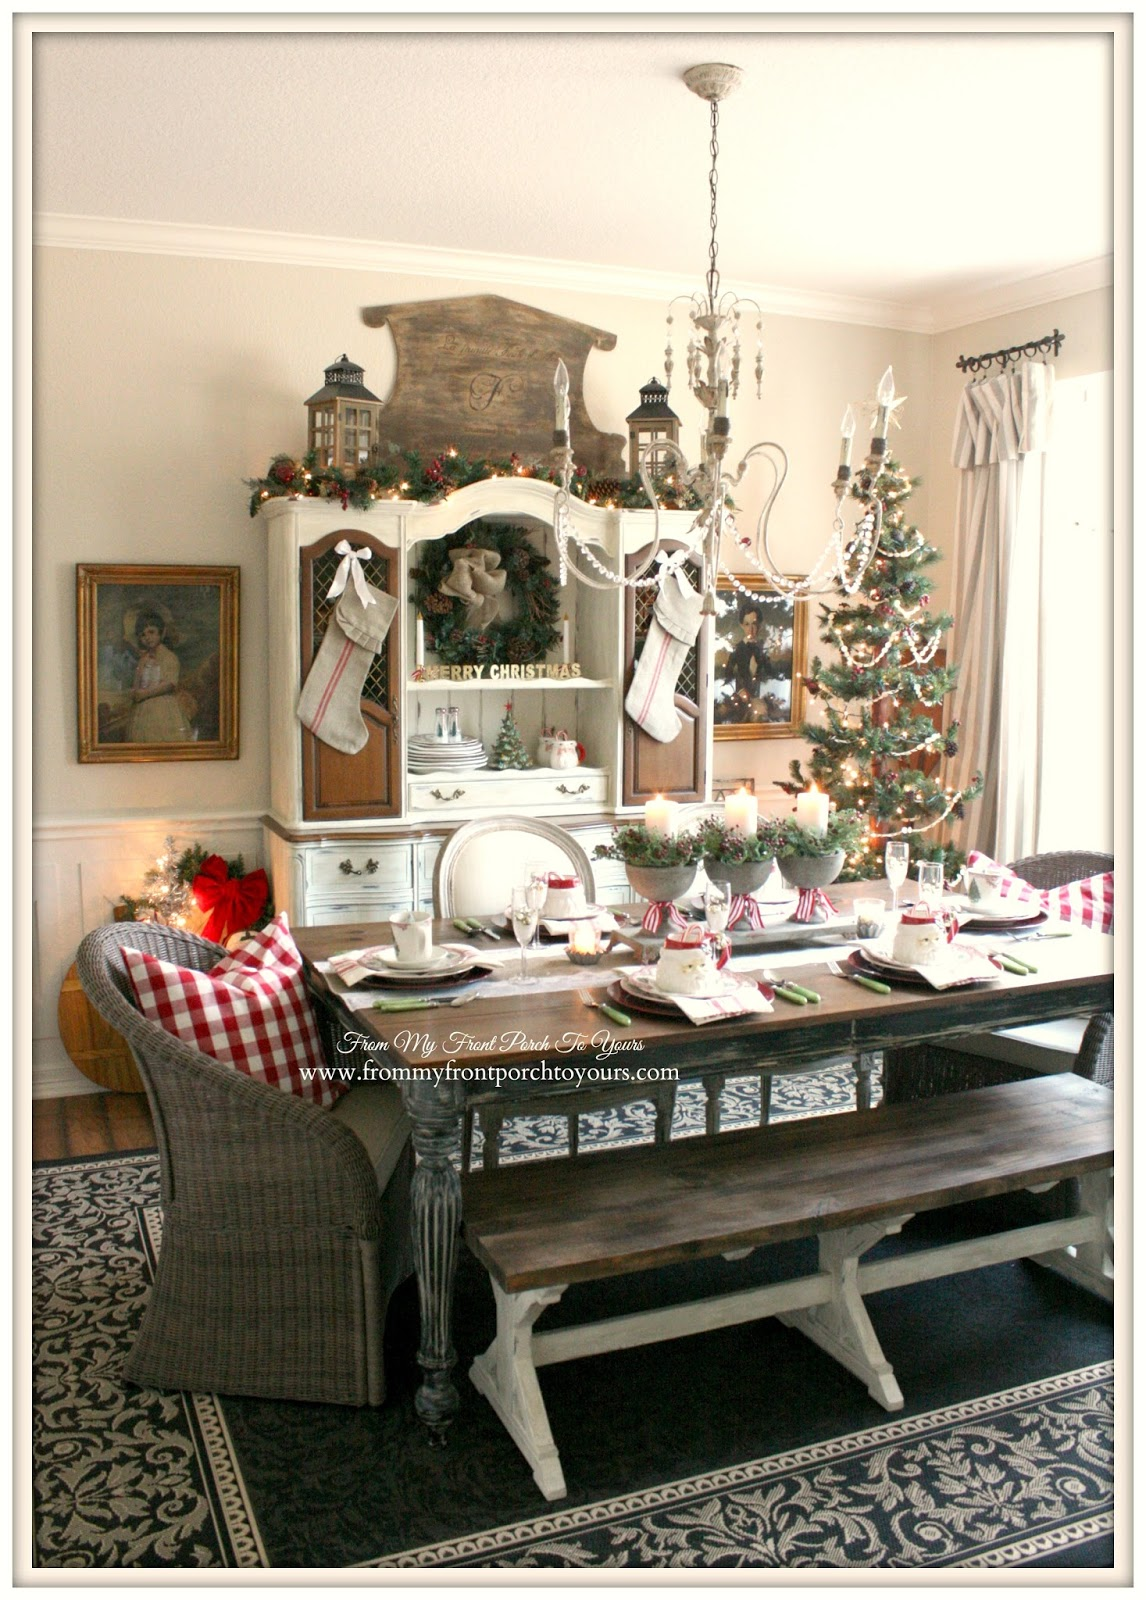 From My Front Porch To Yours: French Farmhouse Vintage ...